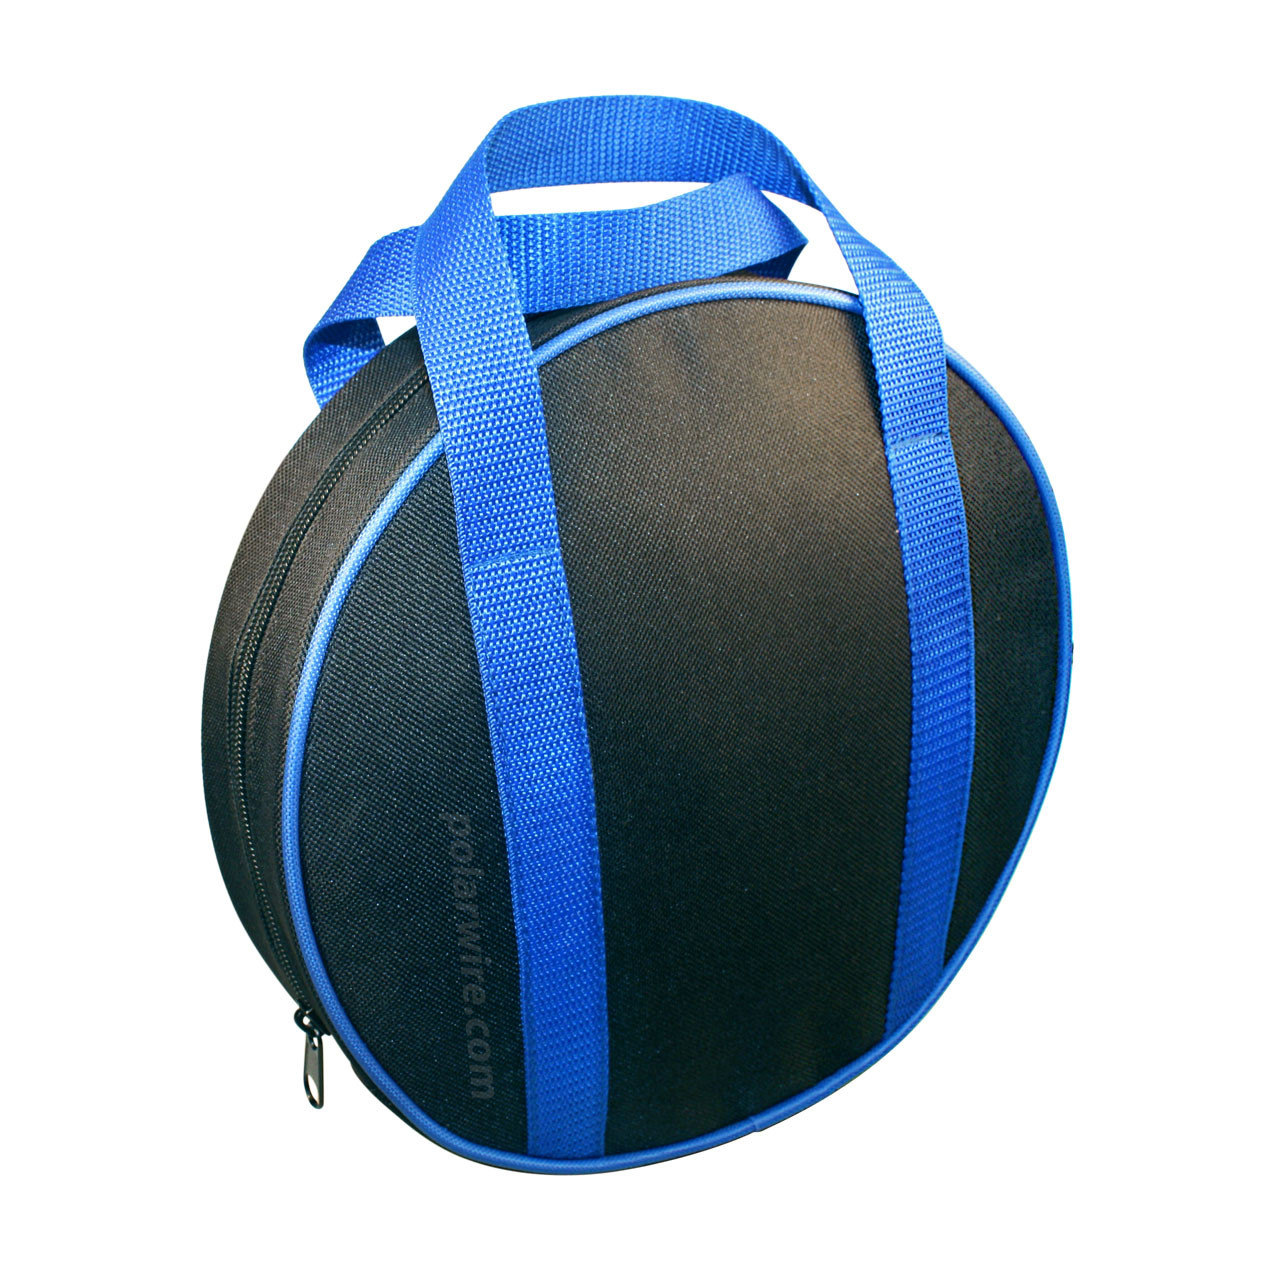 Sturdy nylon canvas jumper cable bag, 10 inches diameter by 2.5 inches high